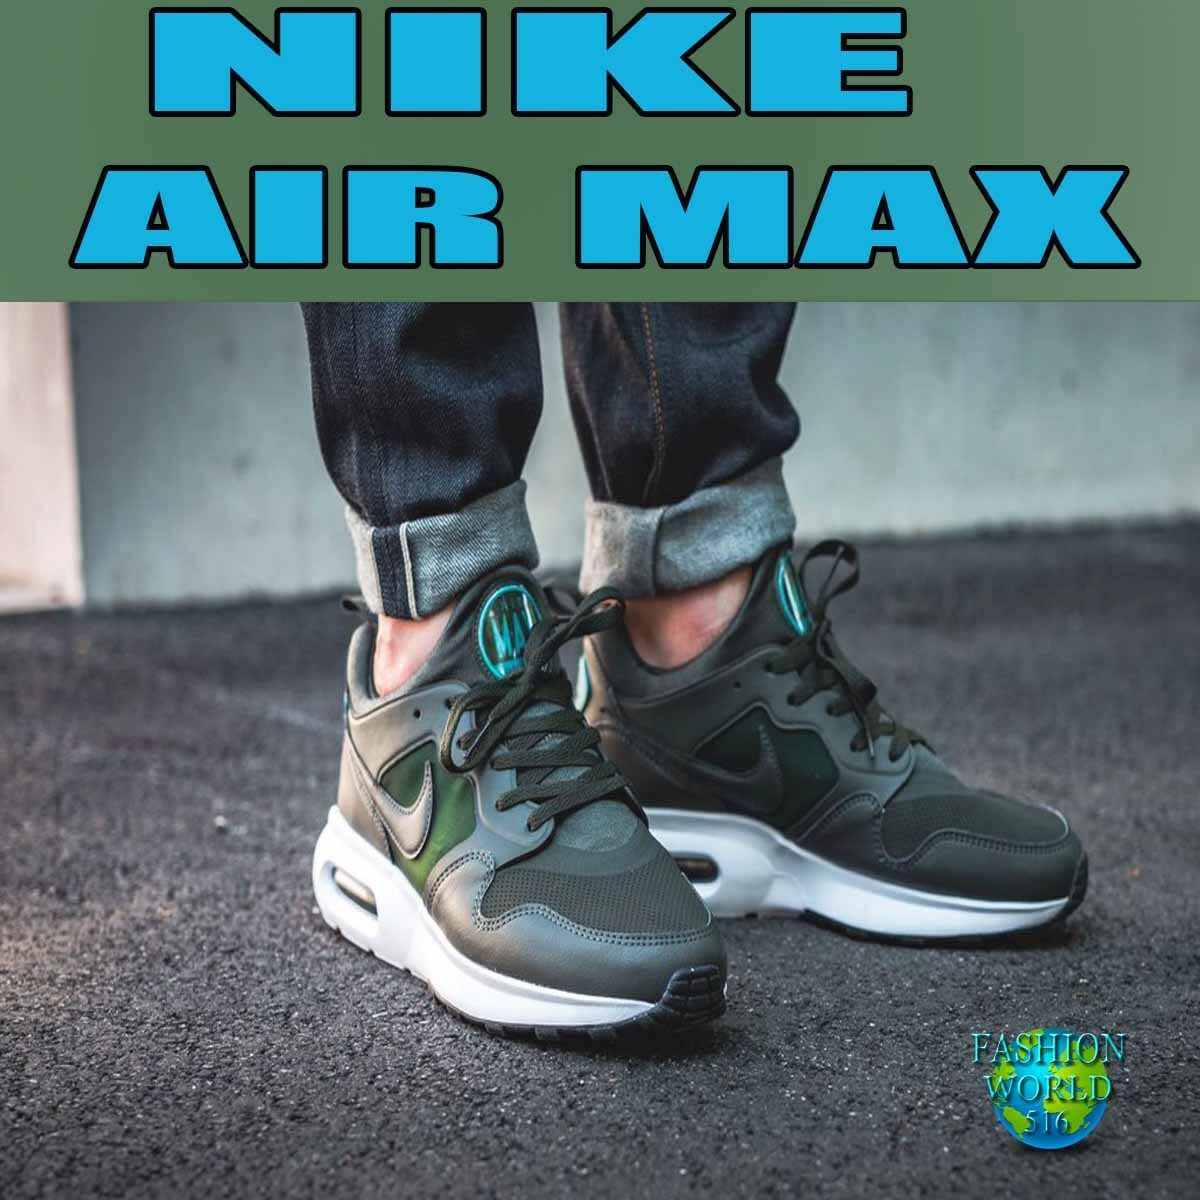 Nike Men's Size 9 Air Max Prime SL Running Shoes 876069 Sequoia Green/Blustery